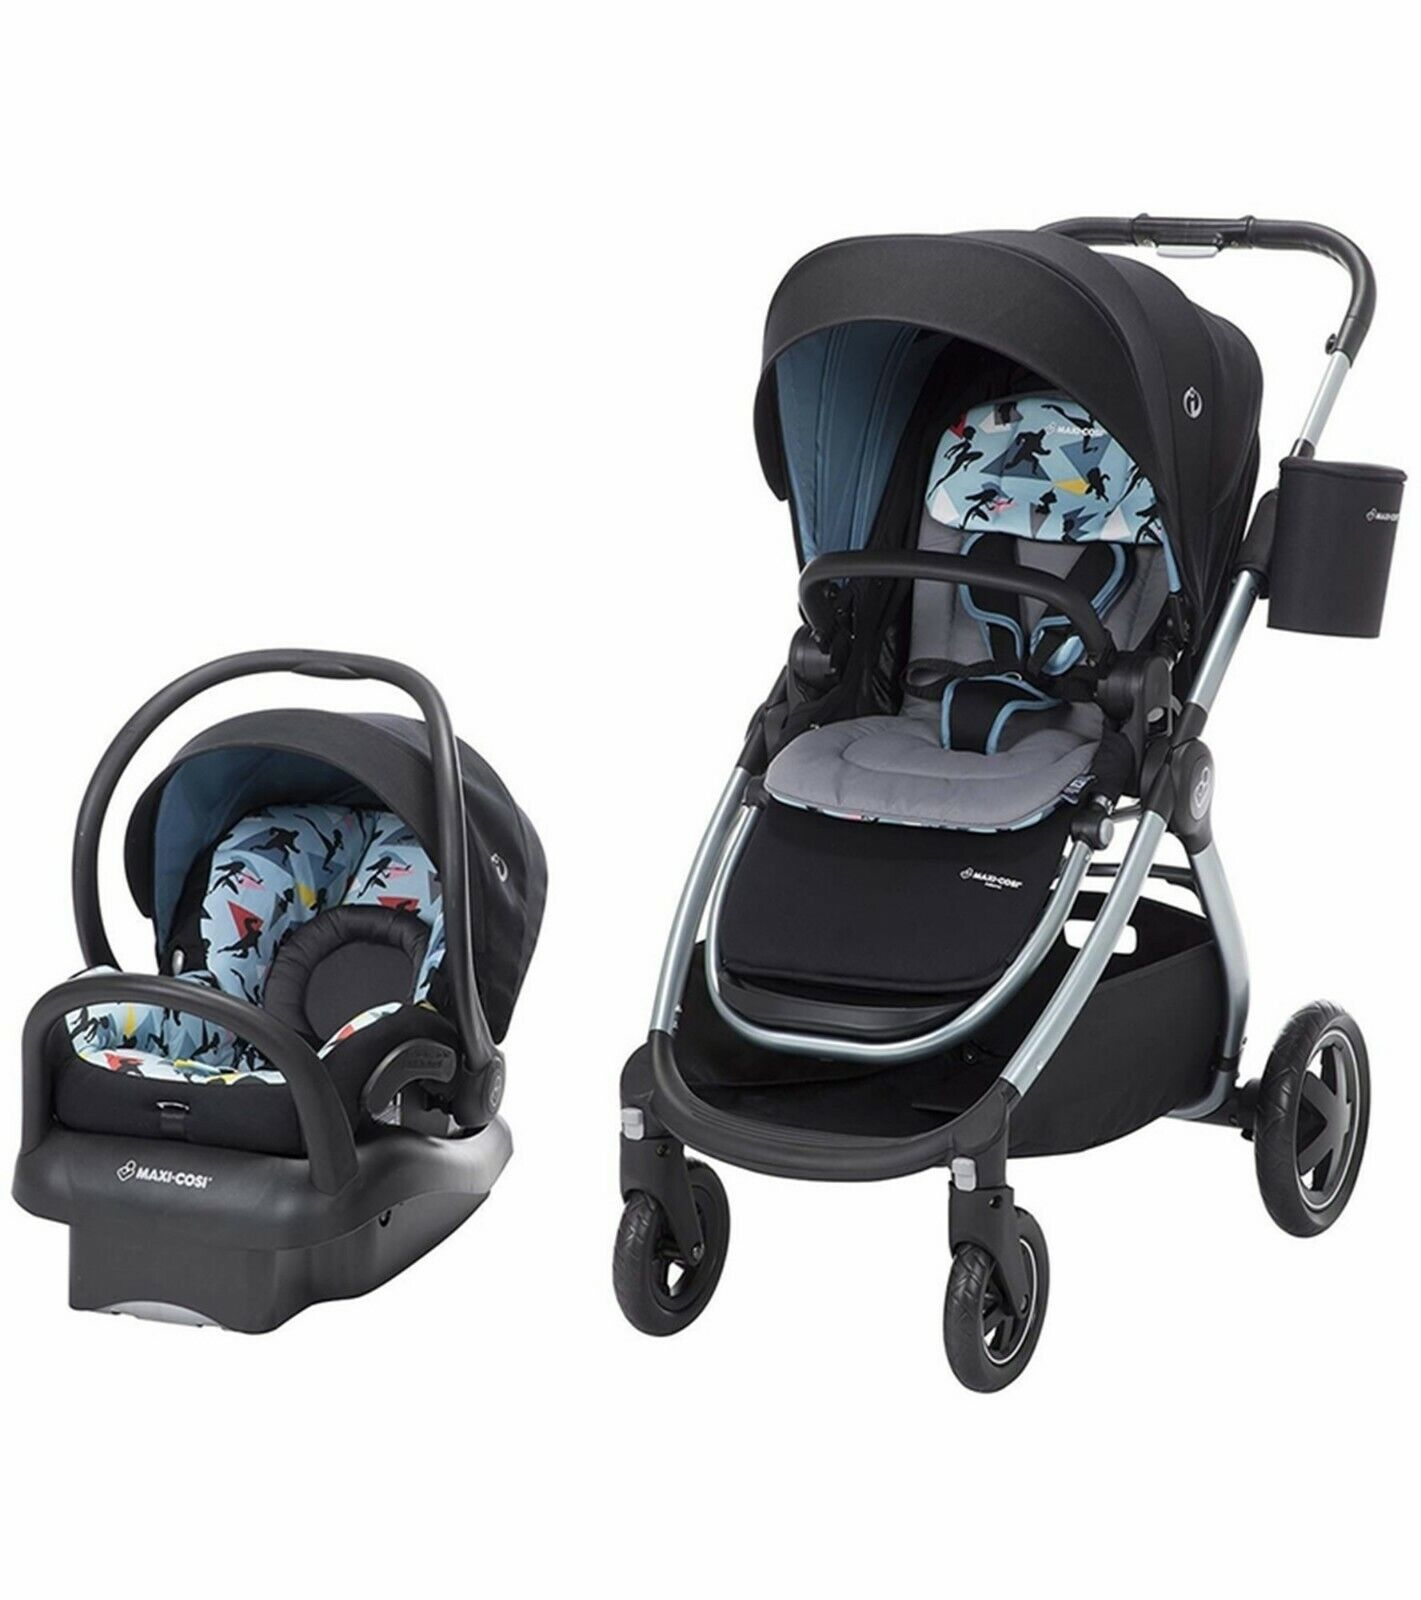 maxi cosi baby stroller with car seat